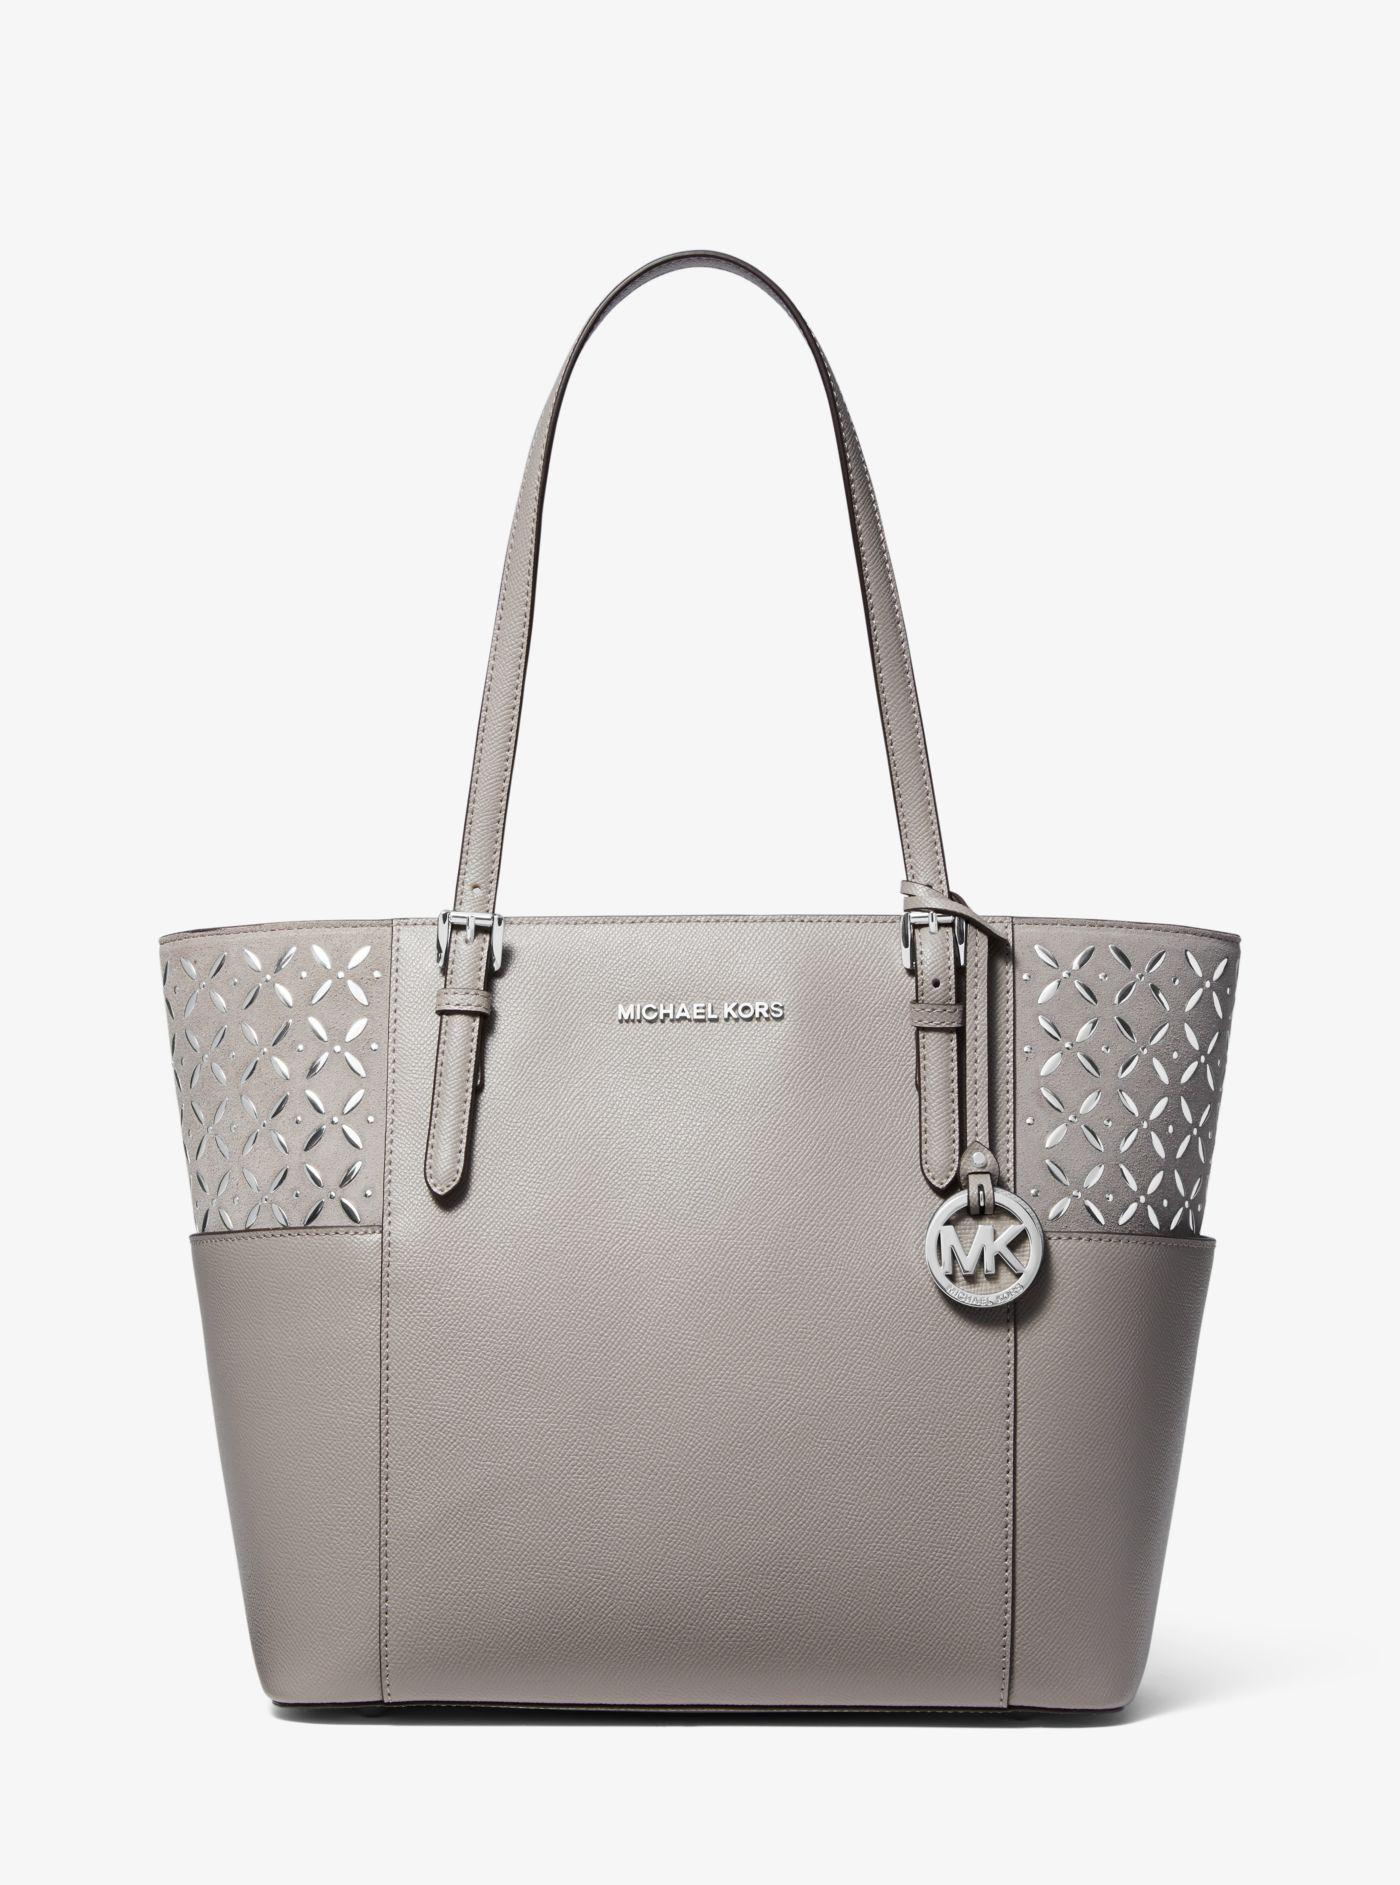 076143ff3b47 Michael Kors Jet Set Large Embellished Leather Tote Bag in Gray - Lyst